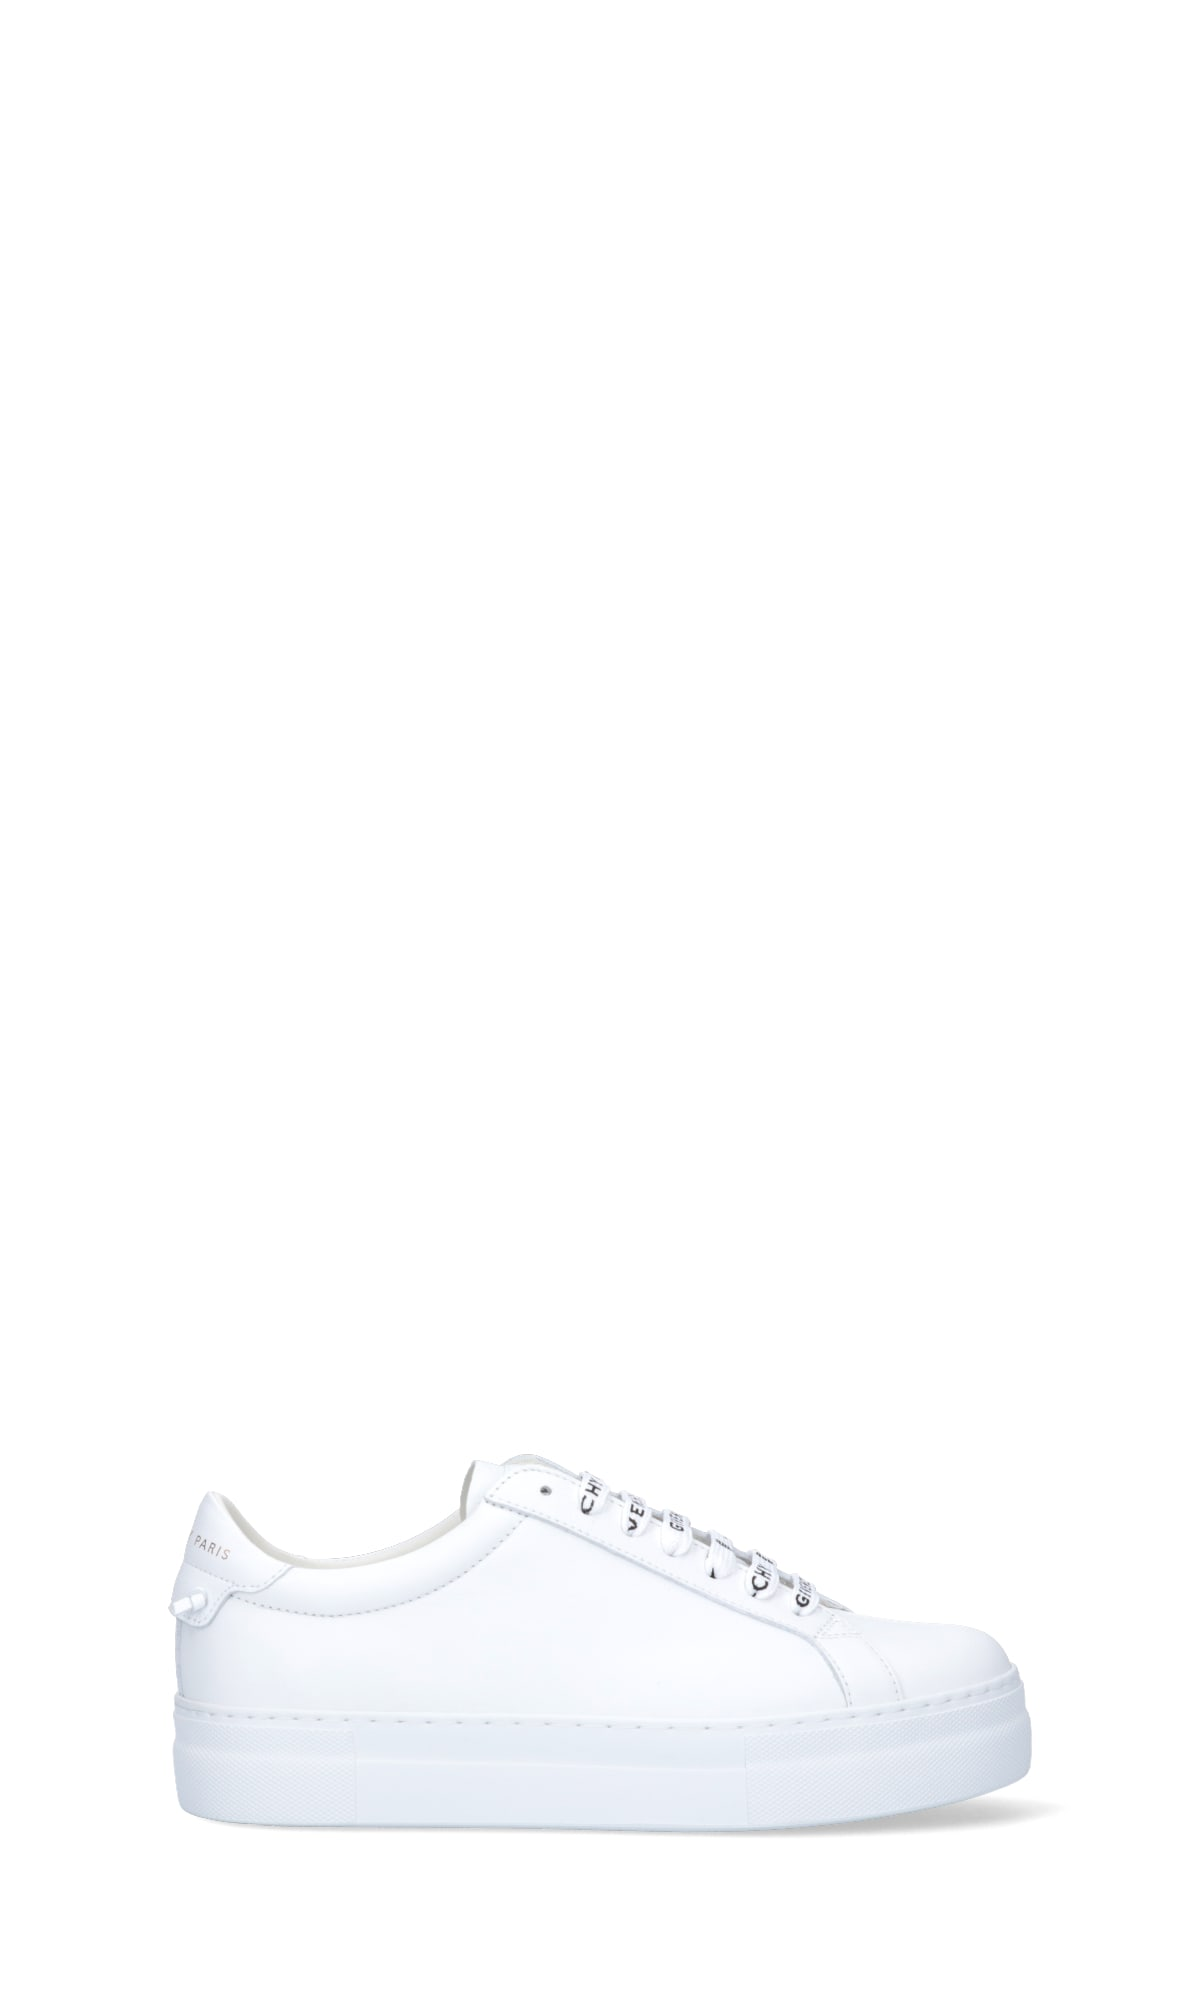 Givenchy Platforms SNEAKERS